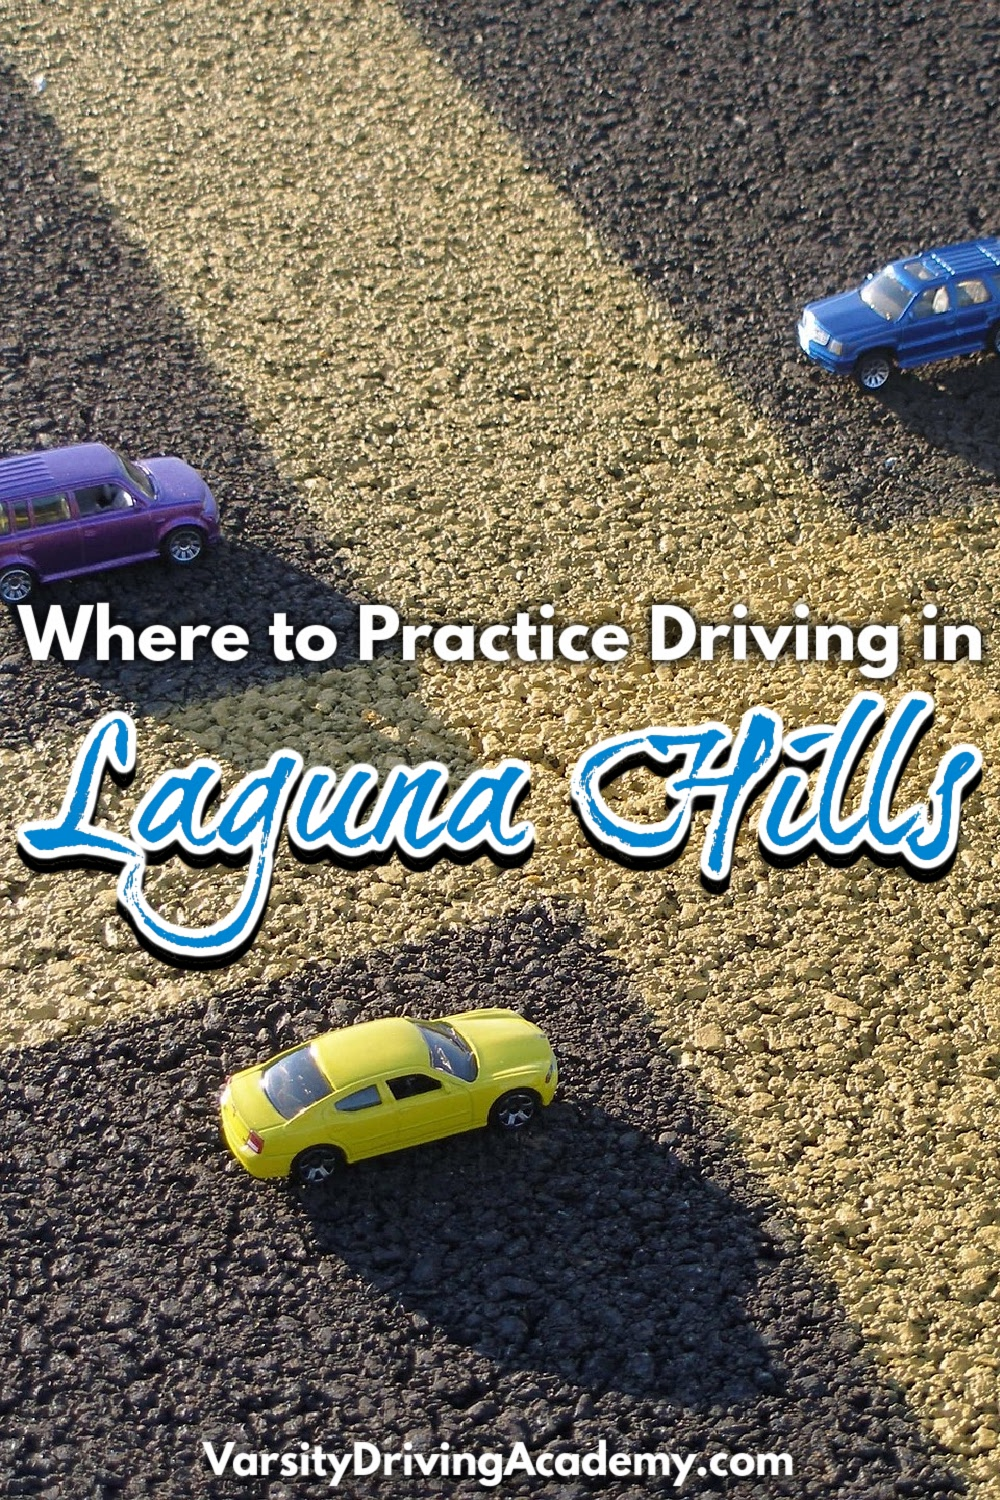 Knowing where to practice driving in Laguna Hills allows you to get ready to pass the driving test at the DMV.